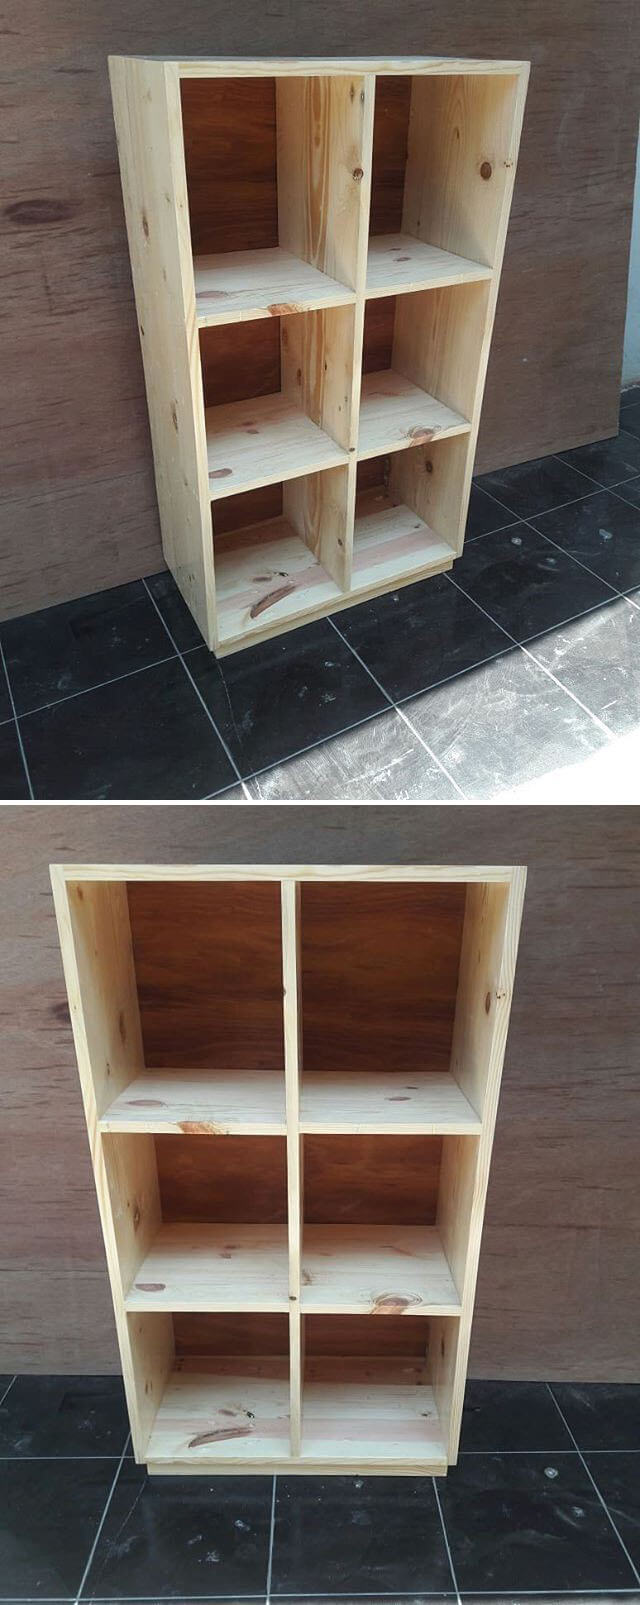 55 Classic Pallet Furniture Projects Ideas